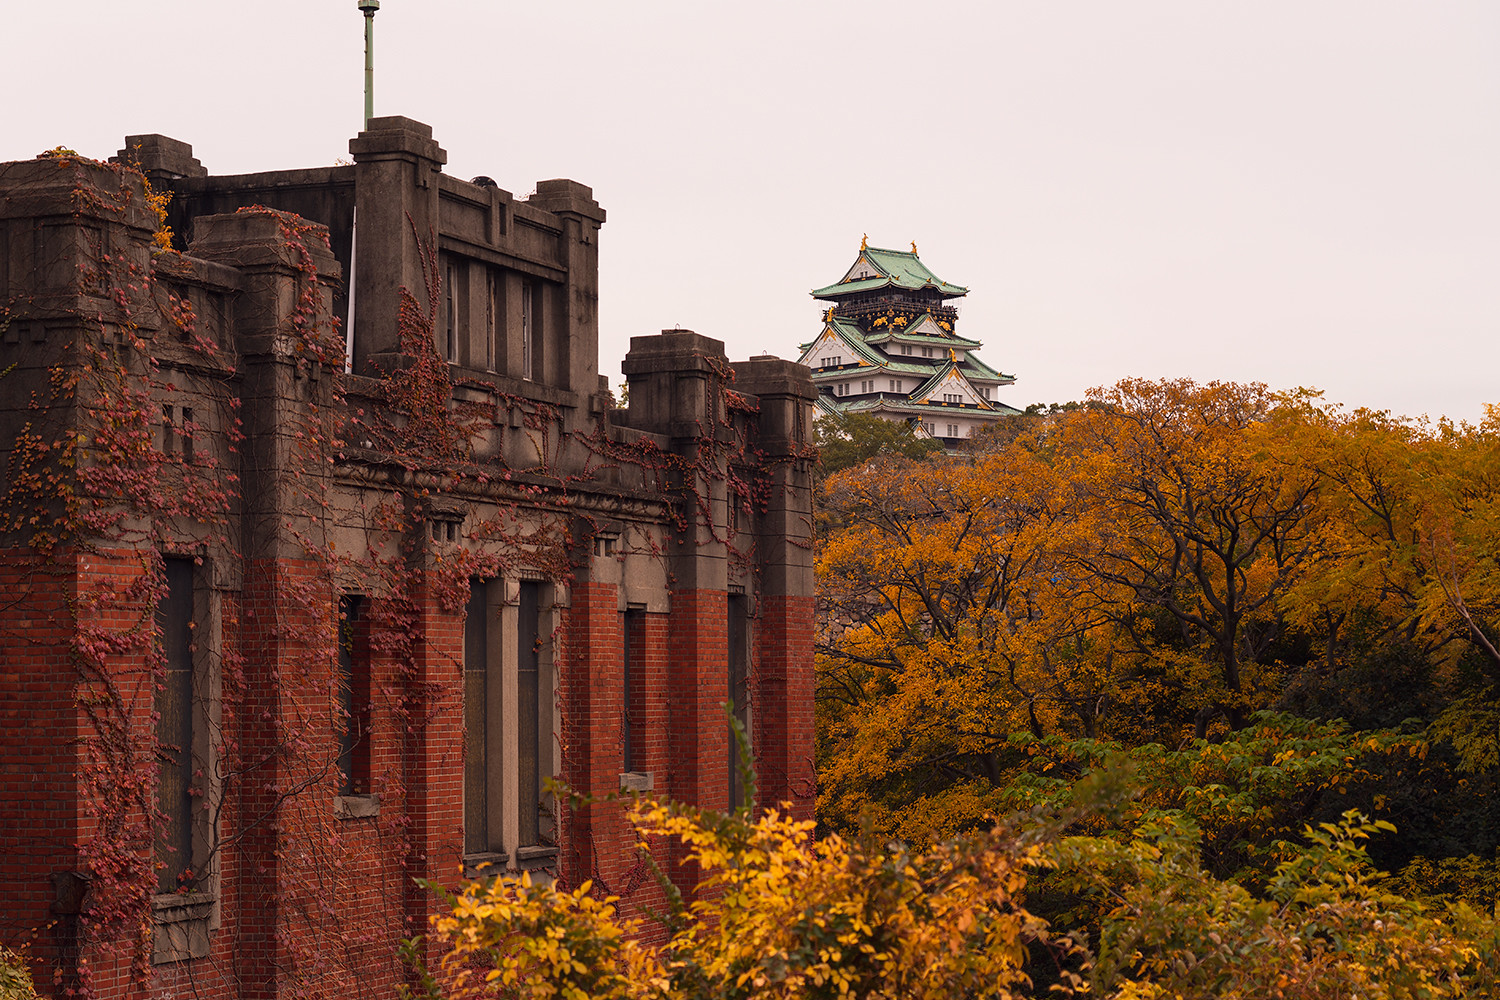 01osaka-castle-japan-fallfoliage-autumn-travel